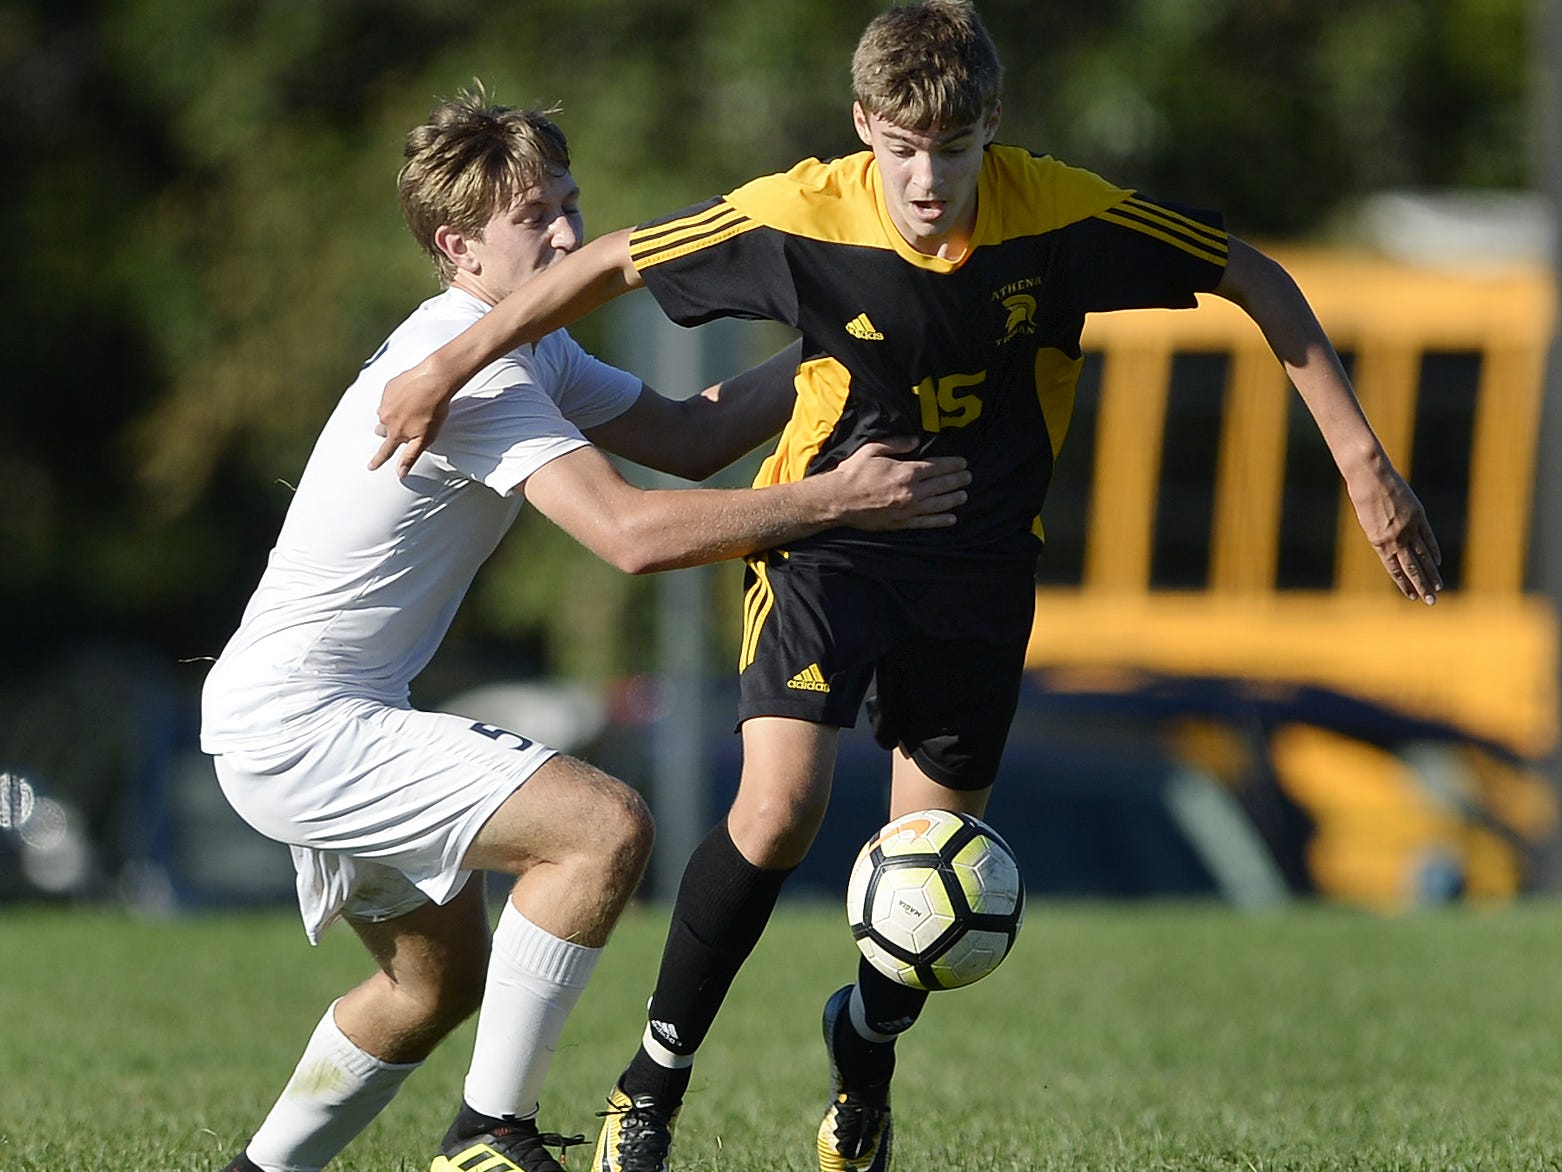 Greece Athena's Ryan Fitzgerald, right, is defended by Brighton's Theo Viggiani-Cole during a regular season game played at Greece Athena High School, Thursday, Sept. 13, 2018. Greece Athena beat Brighton 1-0.